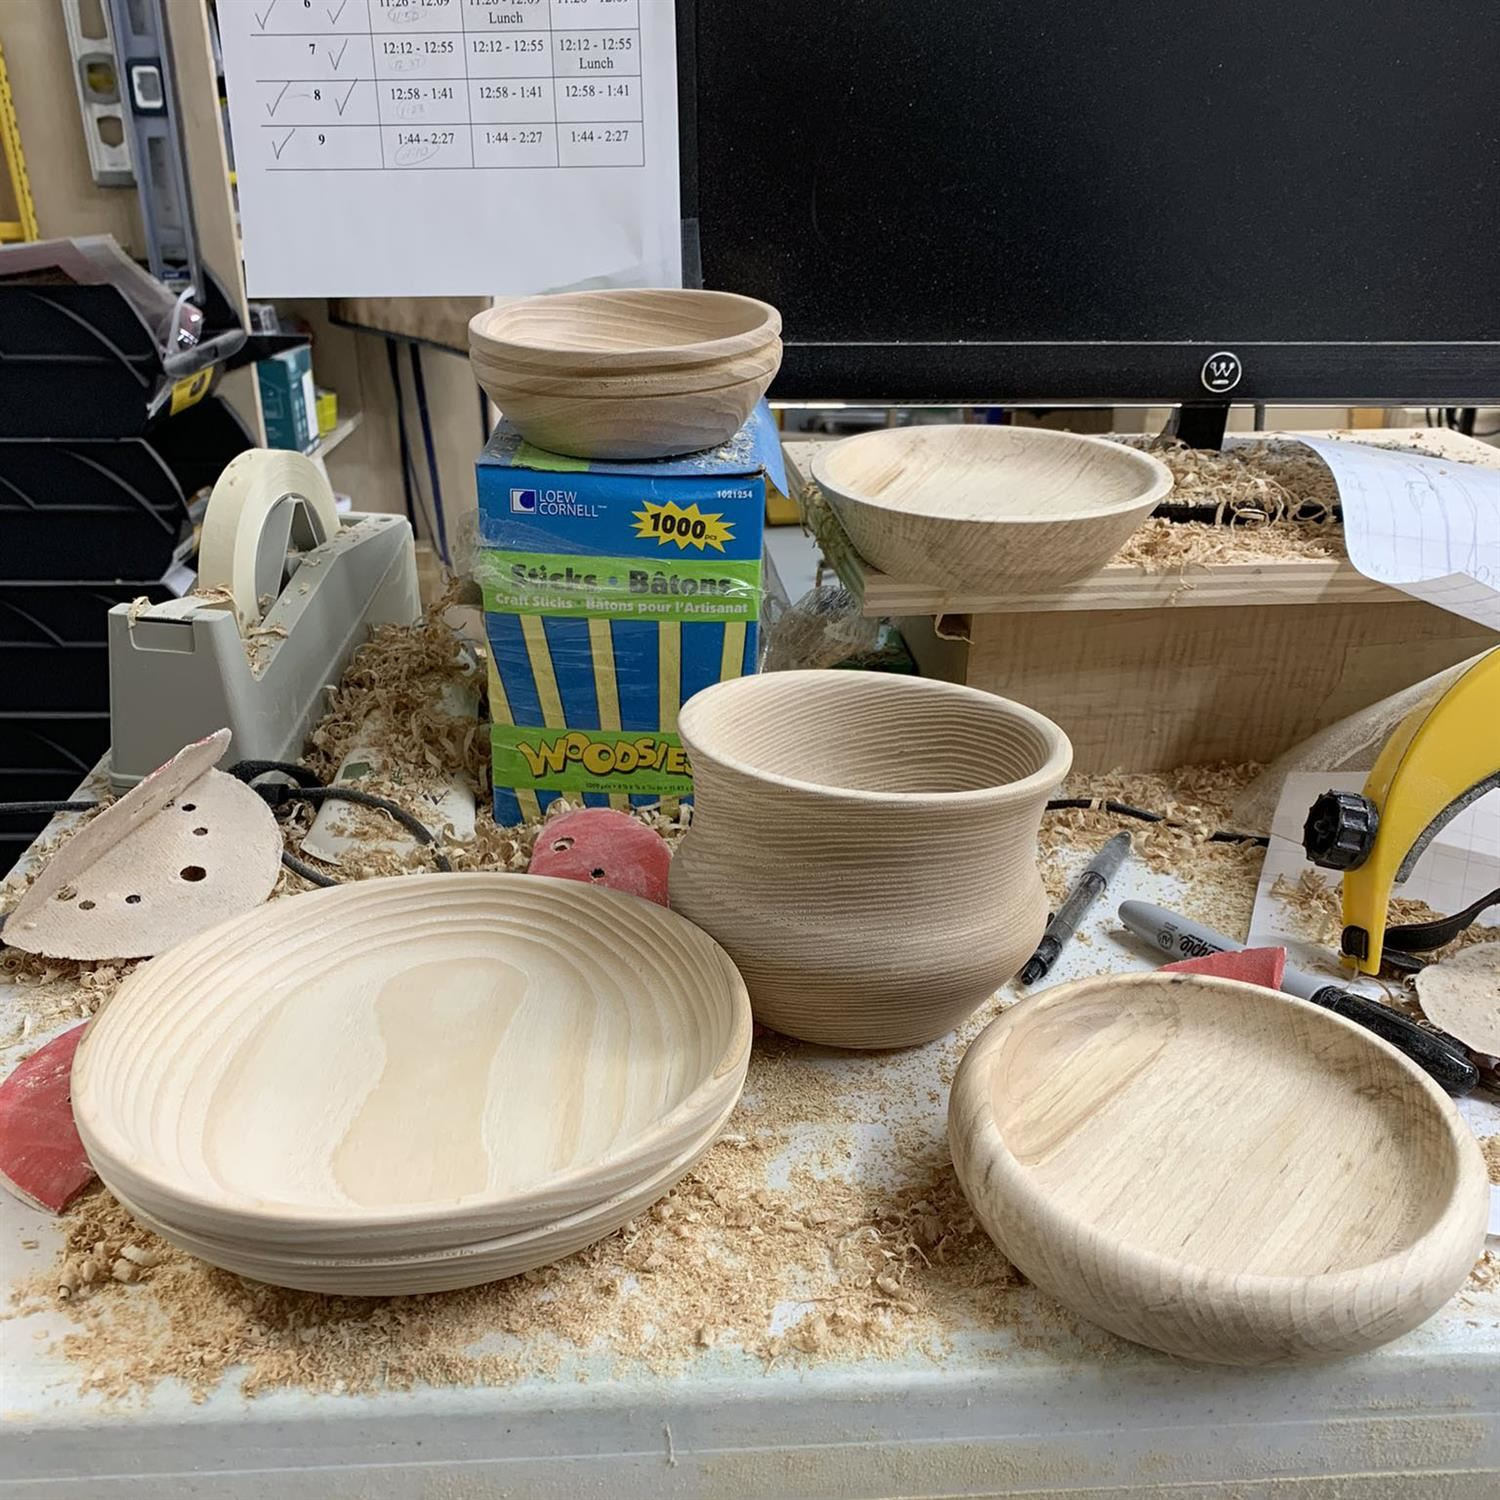 Mr. P's handmade bowls sit on his shop desk surrounded by saw dust